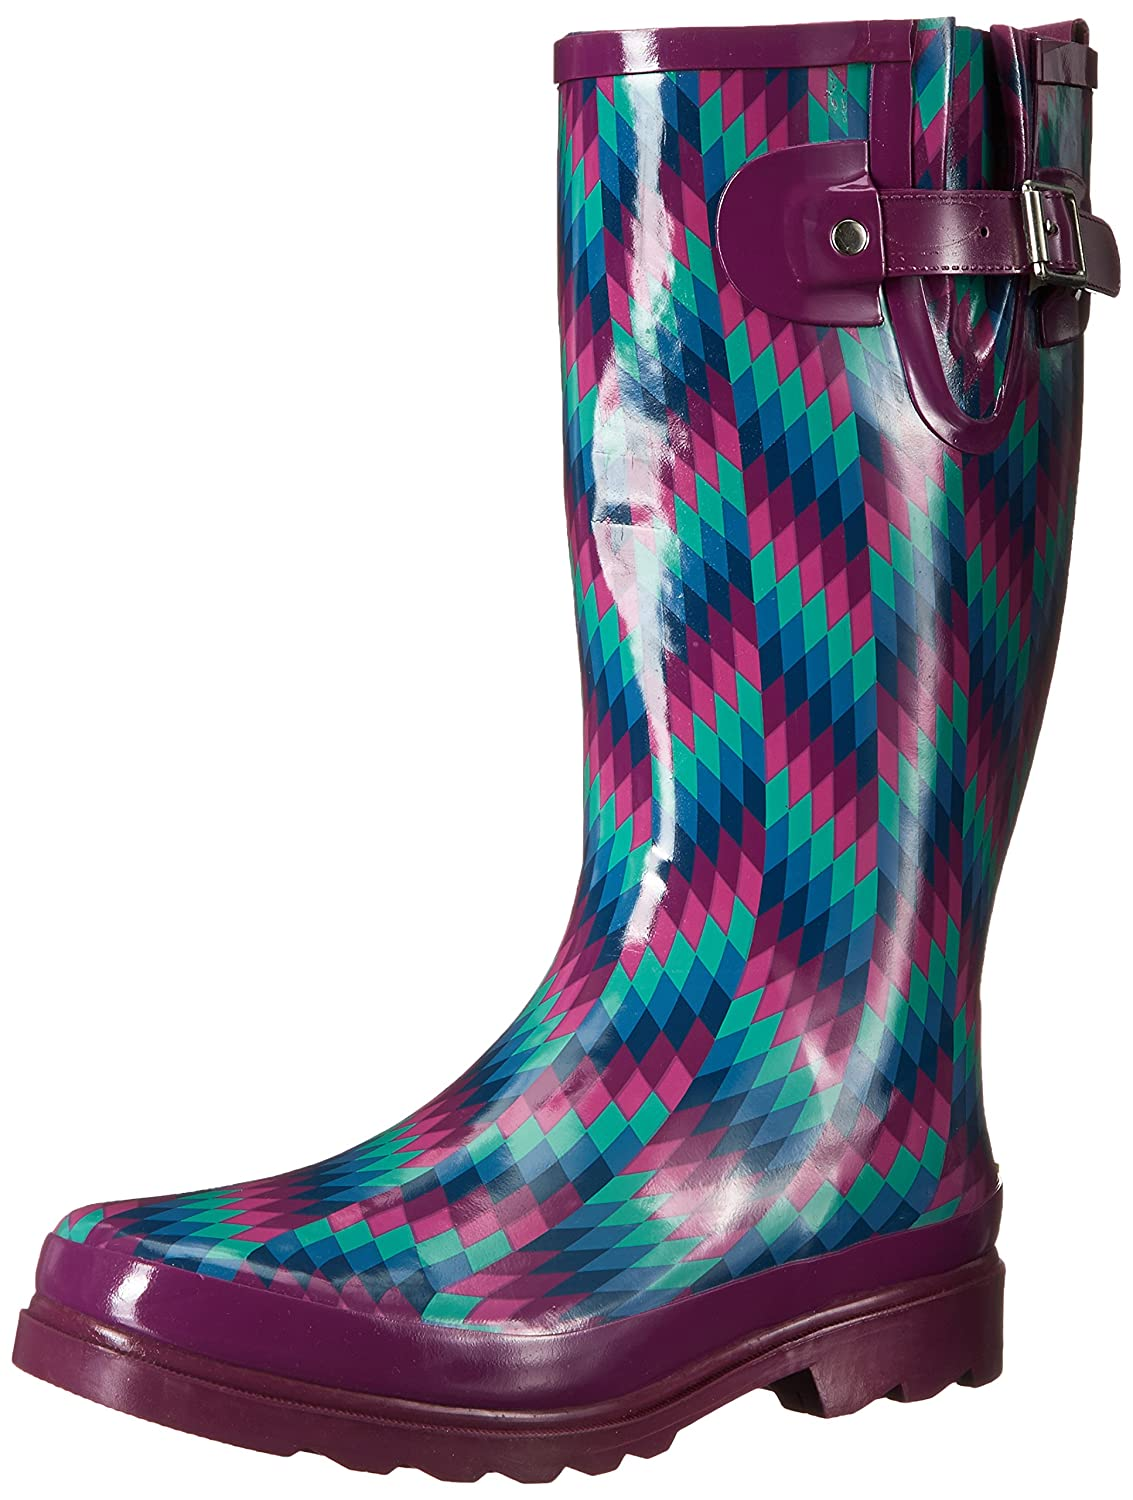 Western Chief Women's Waterproof Printed Tall Rain Boot B00VSRXDKS 11 B(M) US|Aztec Zigzag